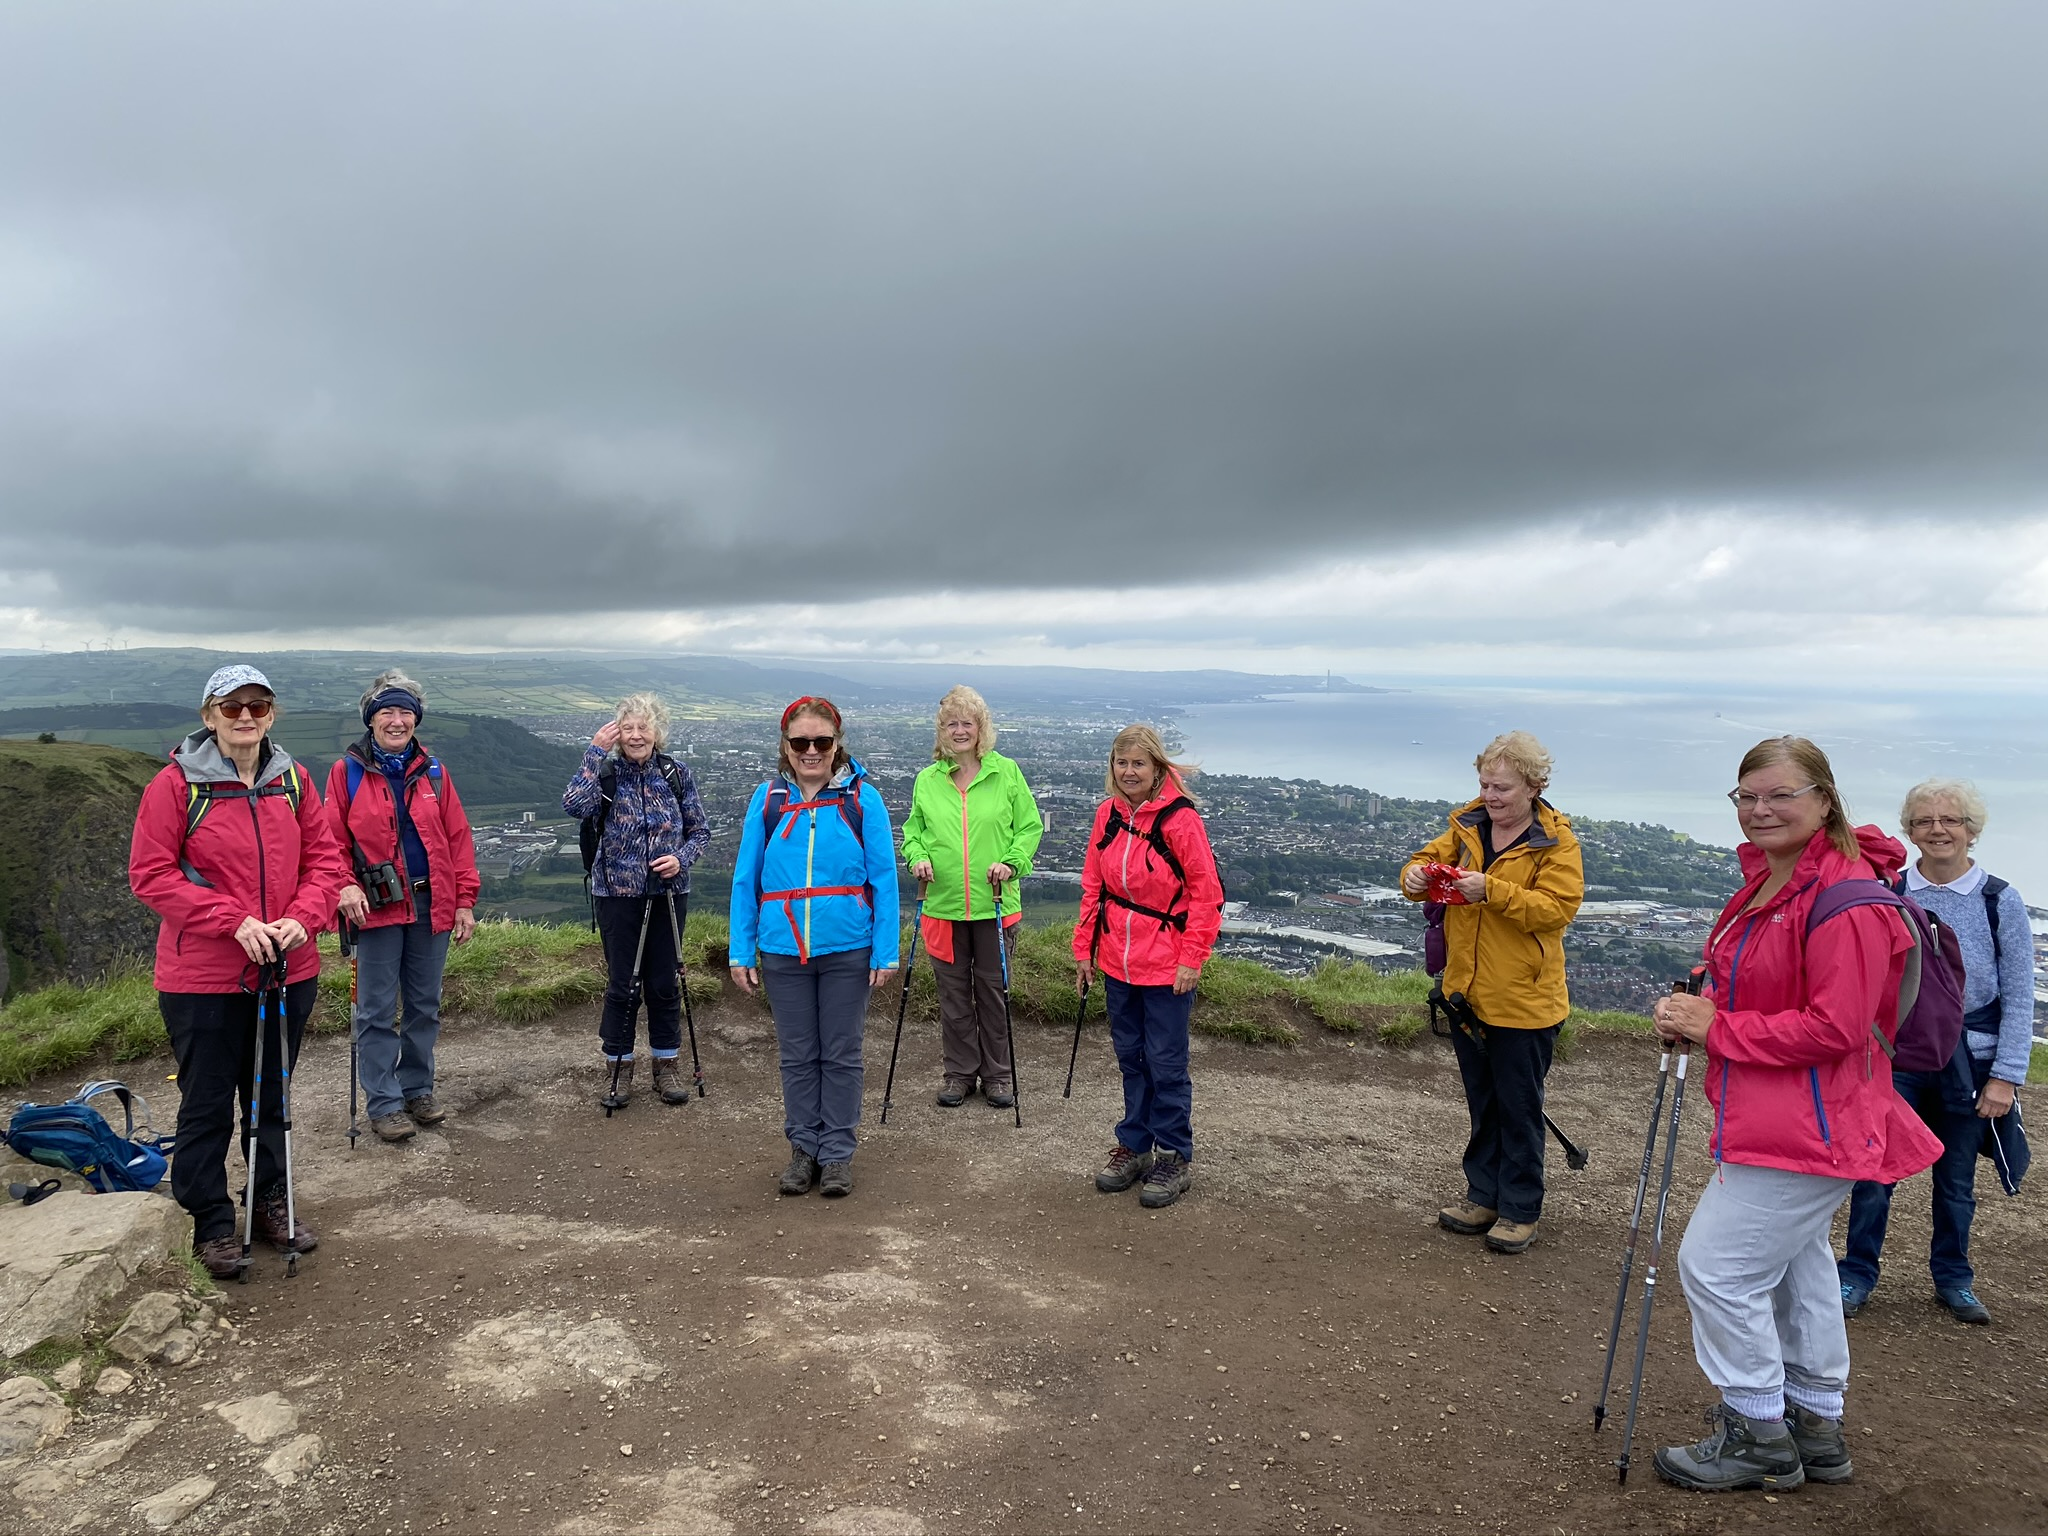 Half of NTM walkers at Cavehill July 20